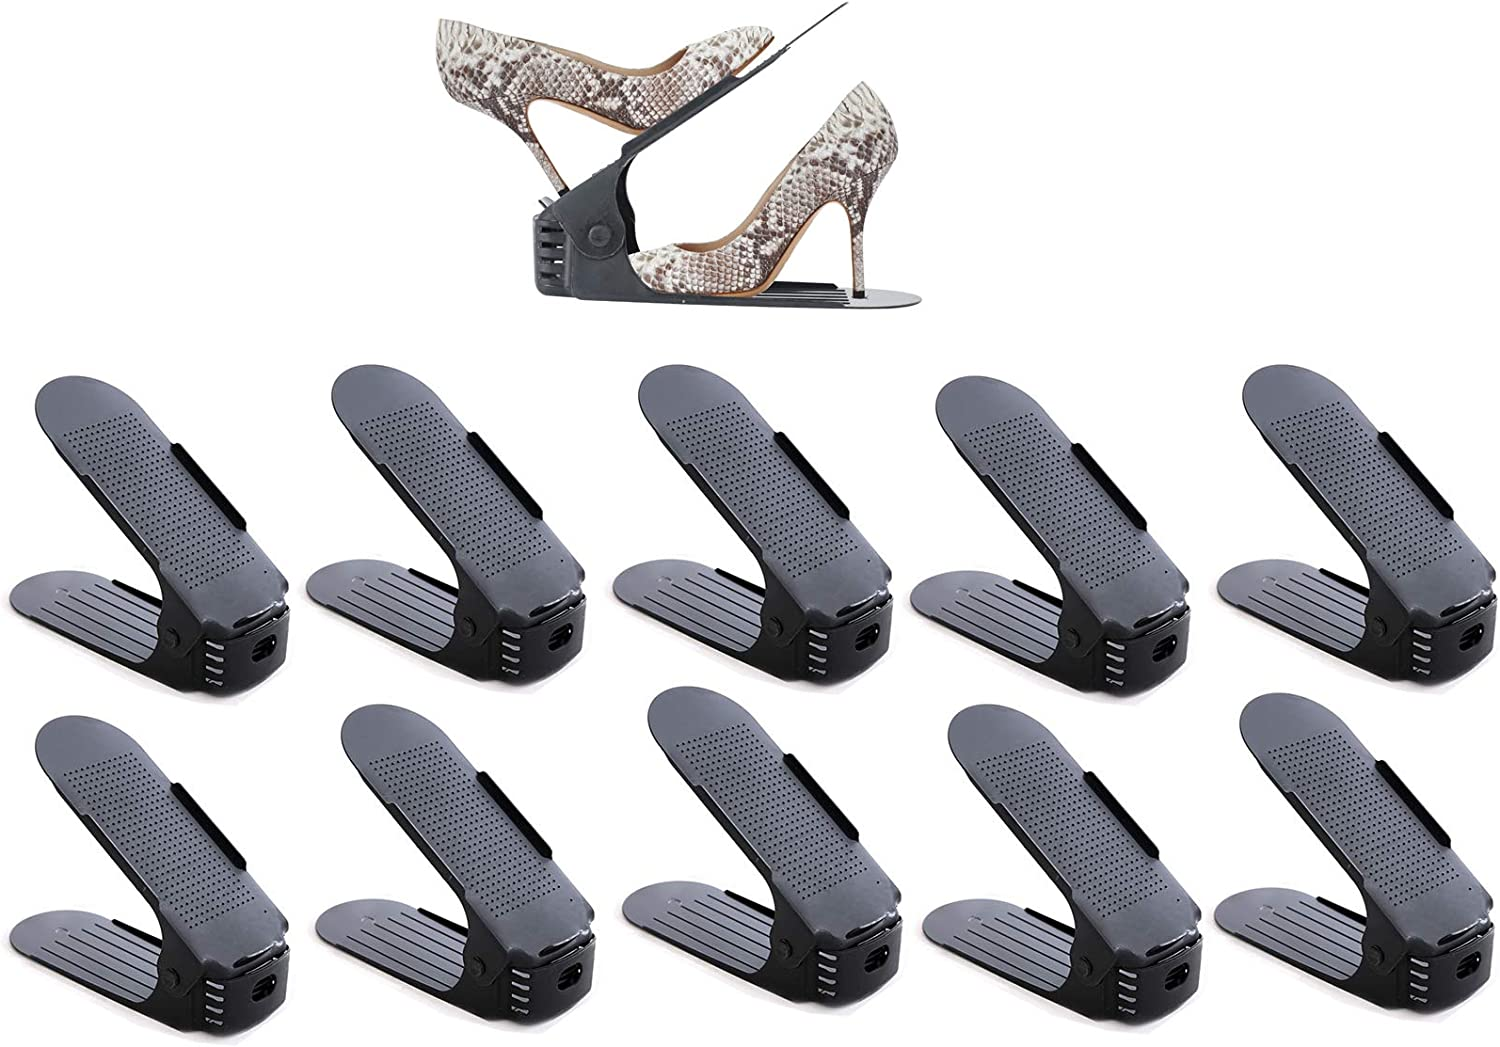 KQGO Shoe Slots Organizer for Closet,Adjustable Shoe Stacker Space Saver,Double Layer Shoe Rack Organizer Holder,Easy Shoes Storage,Pack of 10,Black